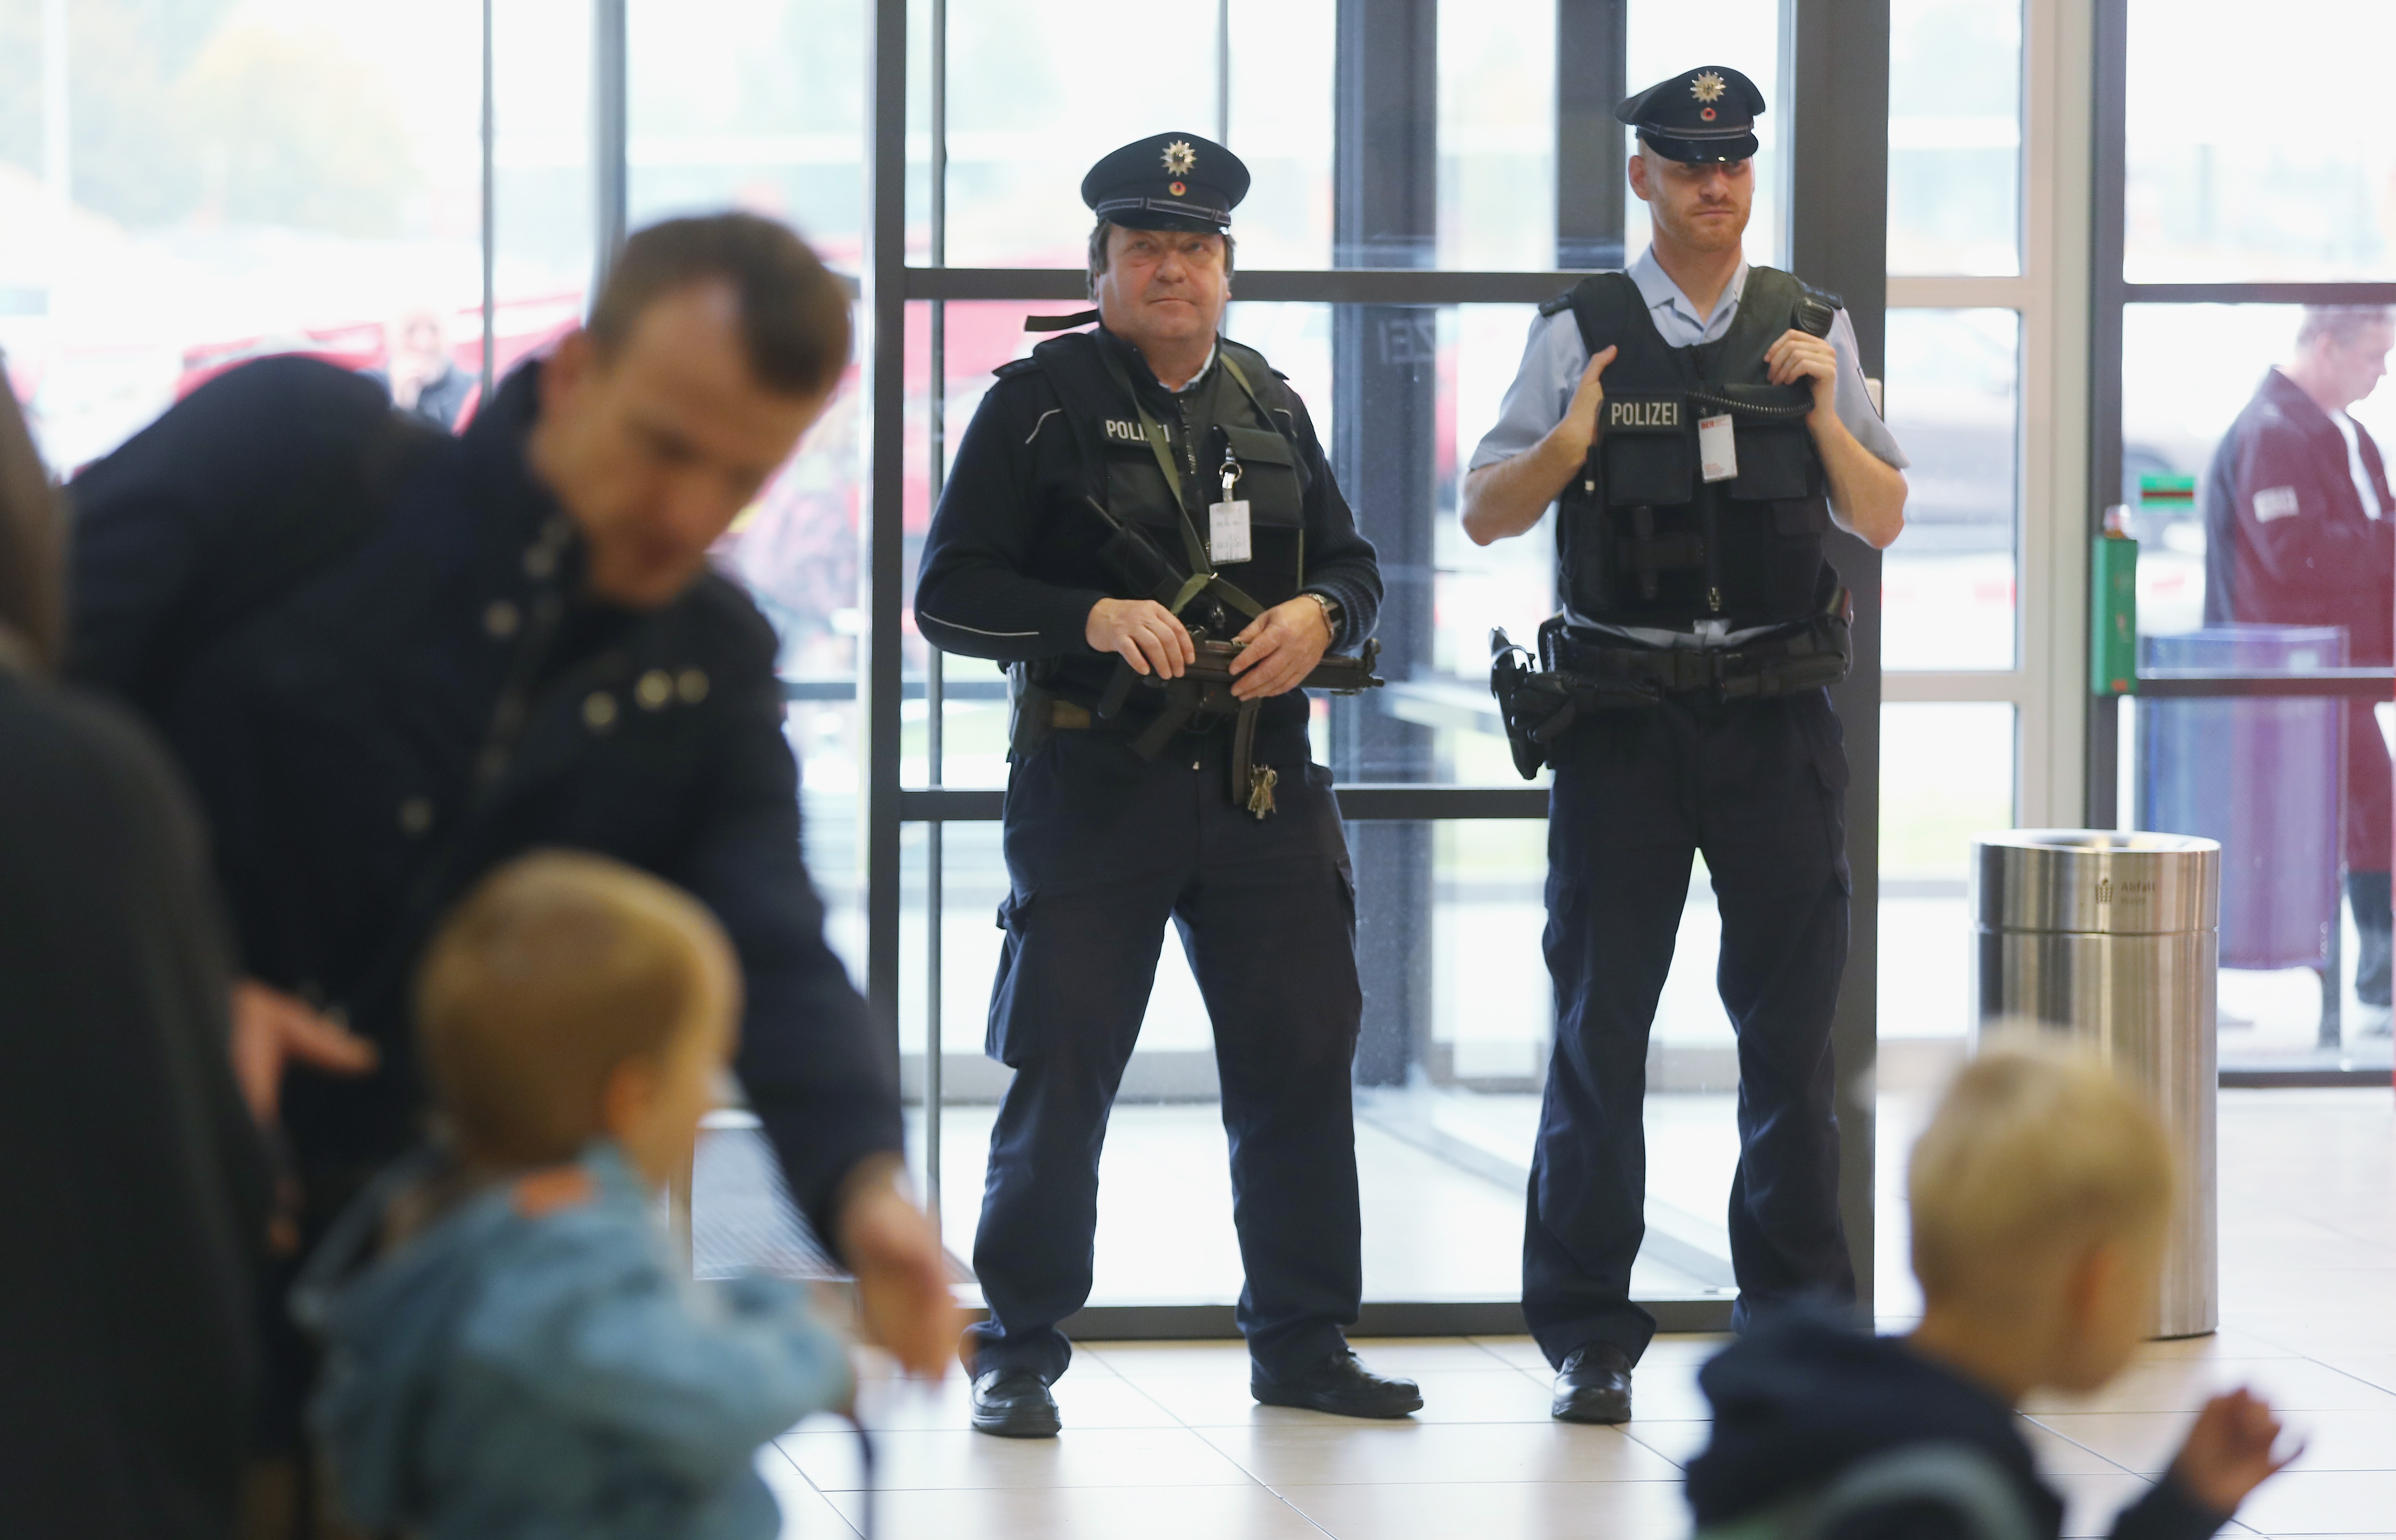 The German Federal Police keep a wary eye at a departure terminal at Schoenefeld Airport, near Berlin, on Oct. 17, 2016